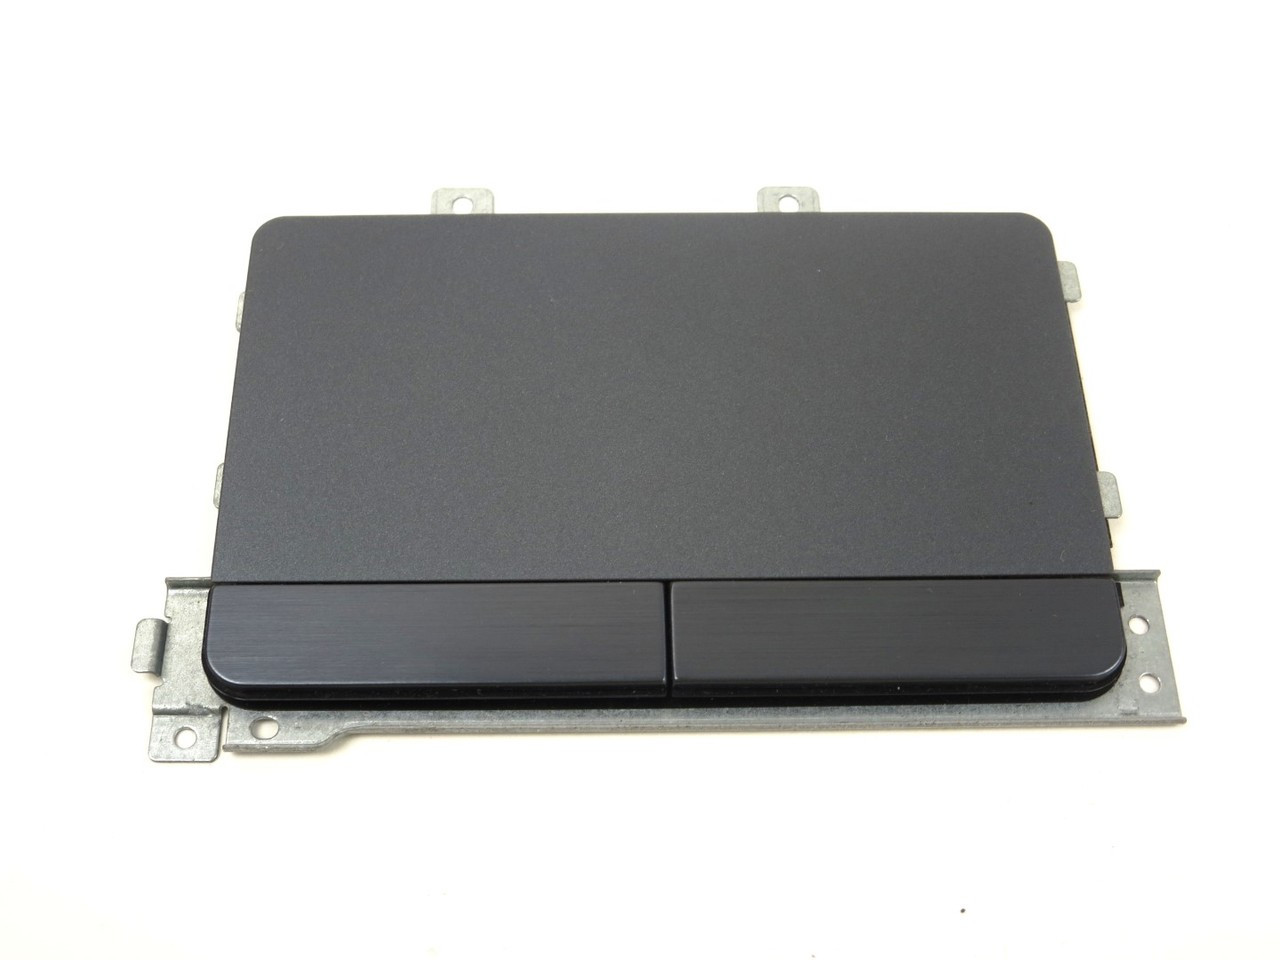 Dell Inspiron 14z 5423 Touchpad With Right and Left Mouse Buttons - 56.17524.621